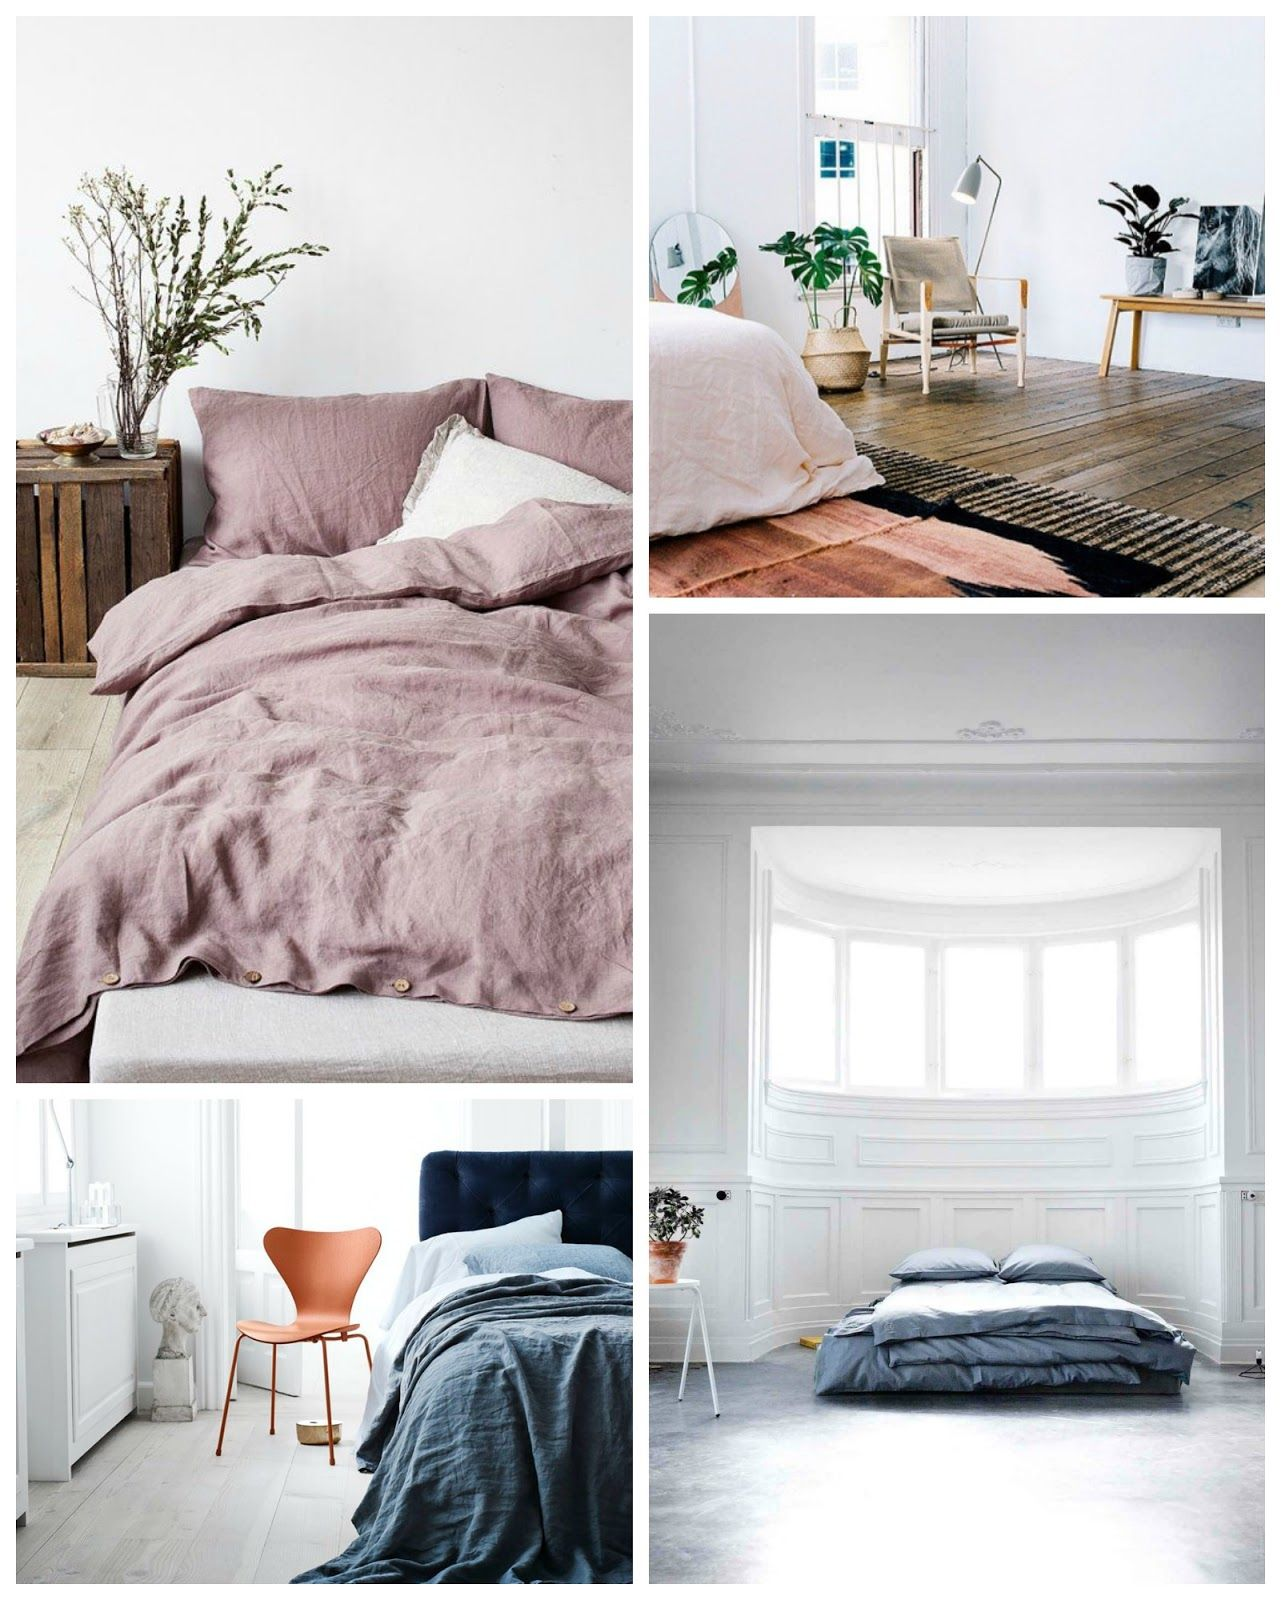 HOUSE GOALS: BEDROOM INSPIRATION | THE LOLLY PROJECT